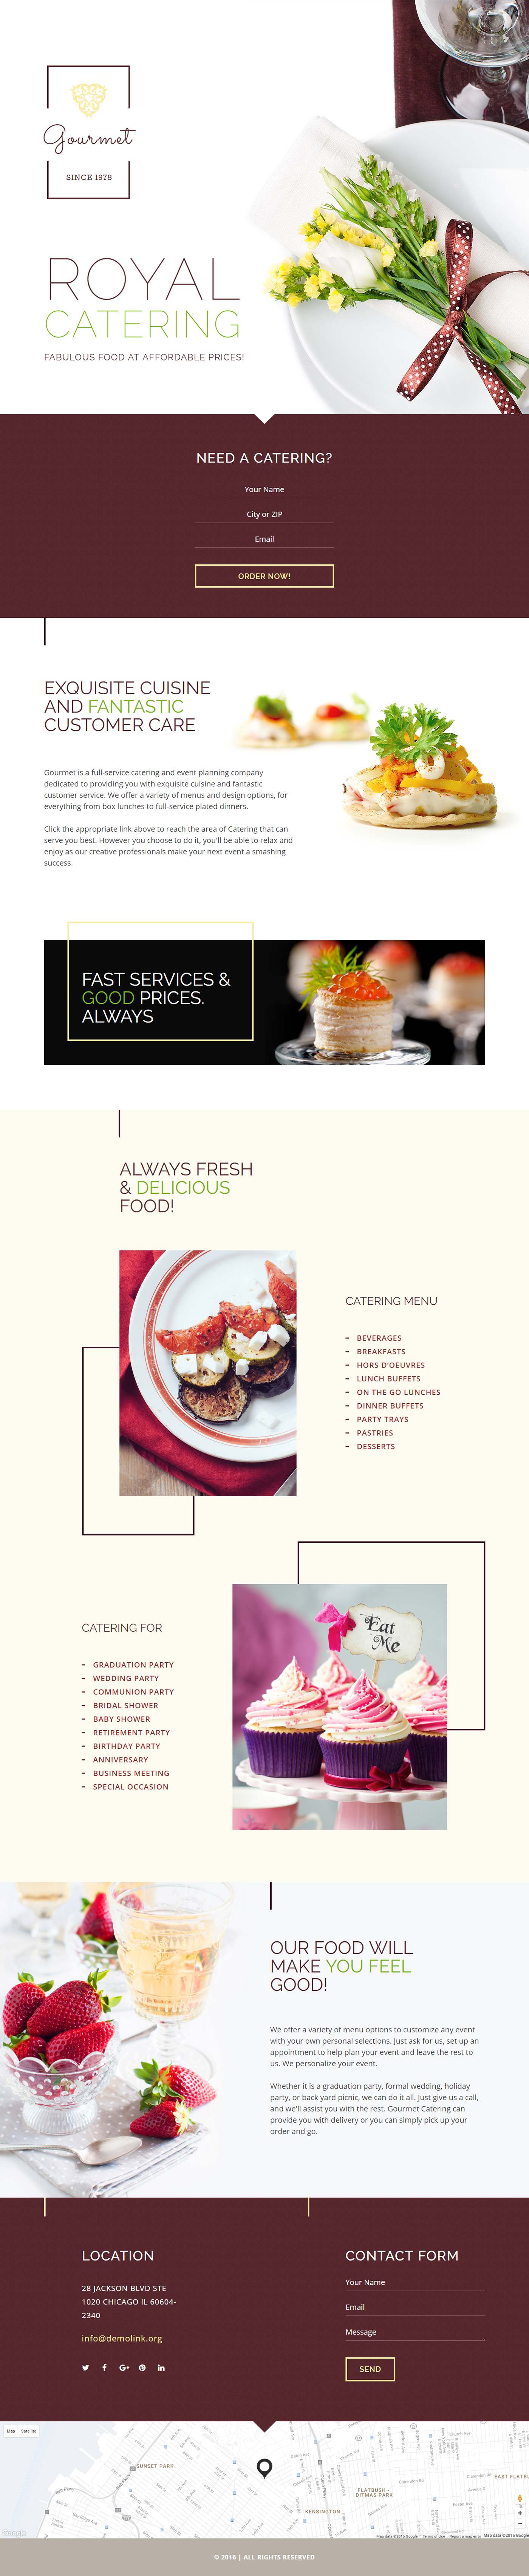 Lpo Template Royal Catering Landing Page Template On Behance  Landing Page .